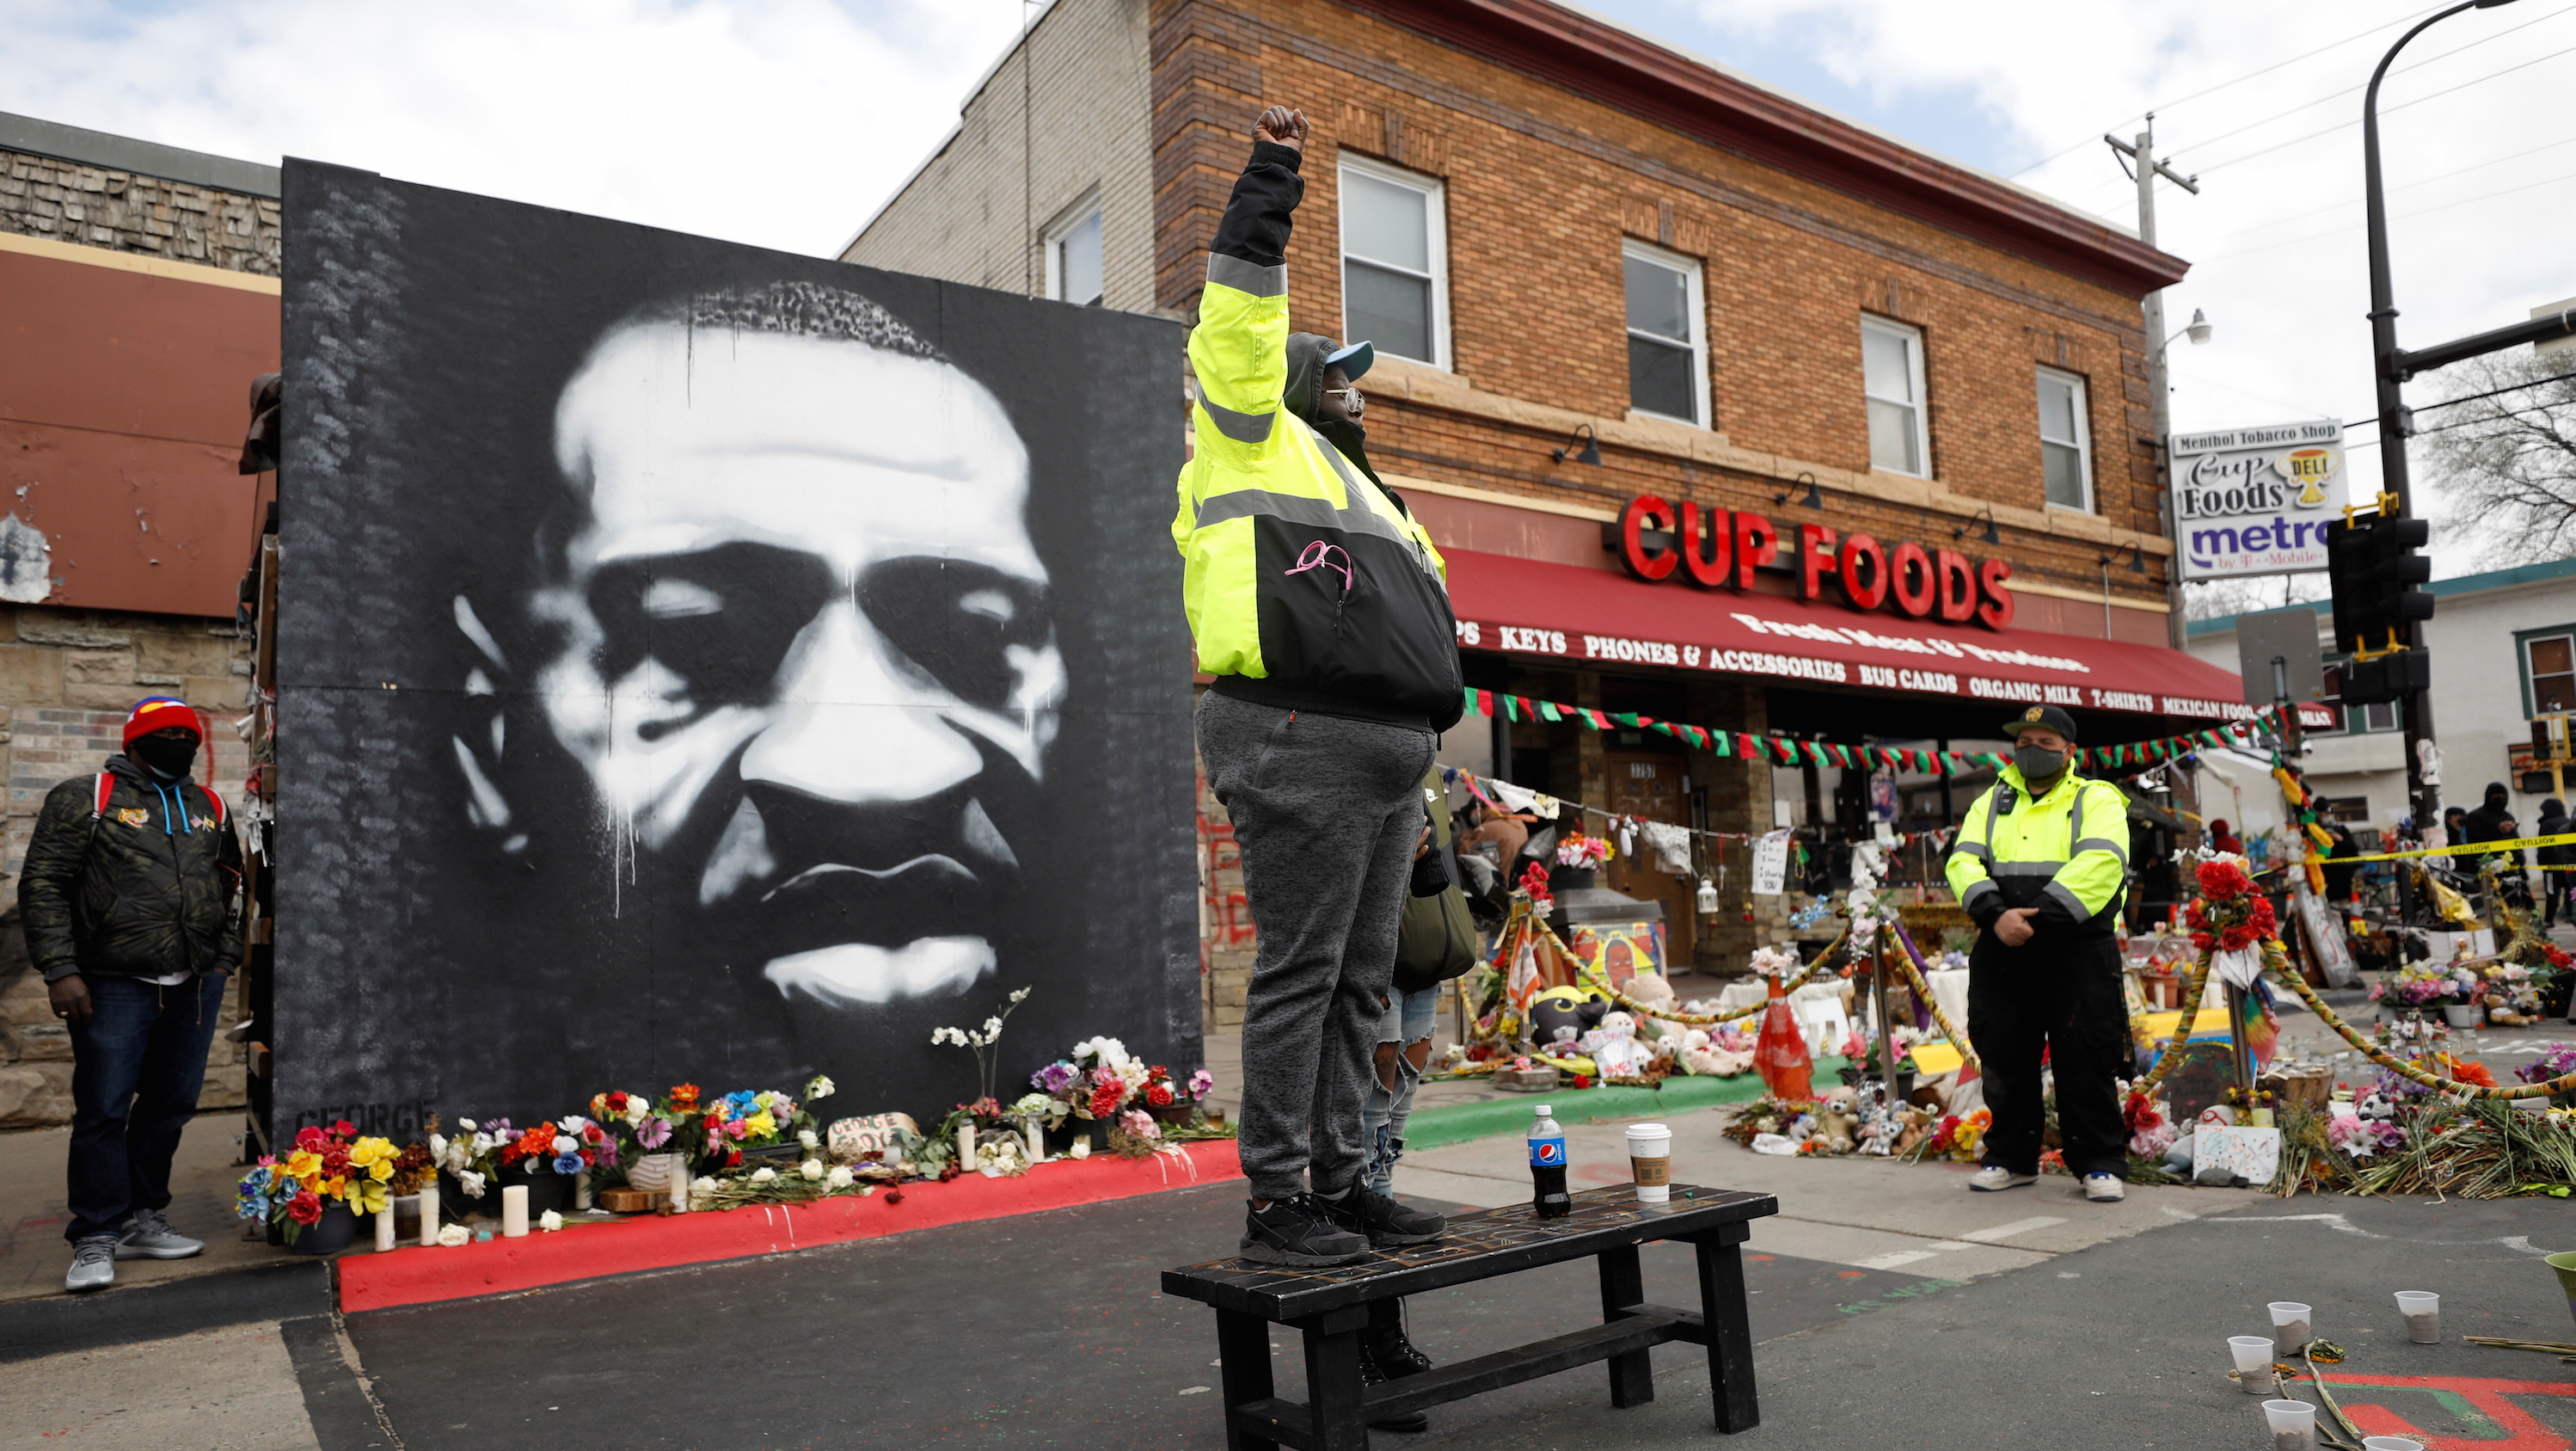 A mural of George Floyd by the Cup Foods store where he was murdered, with a man standing with a raised fist in the foreground